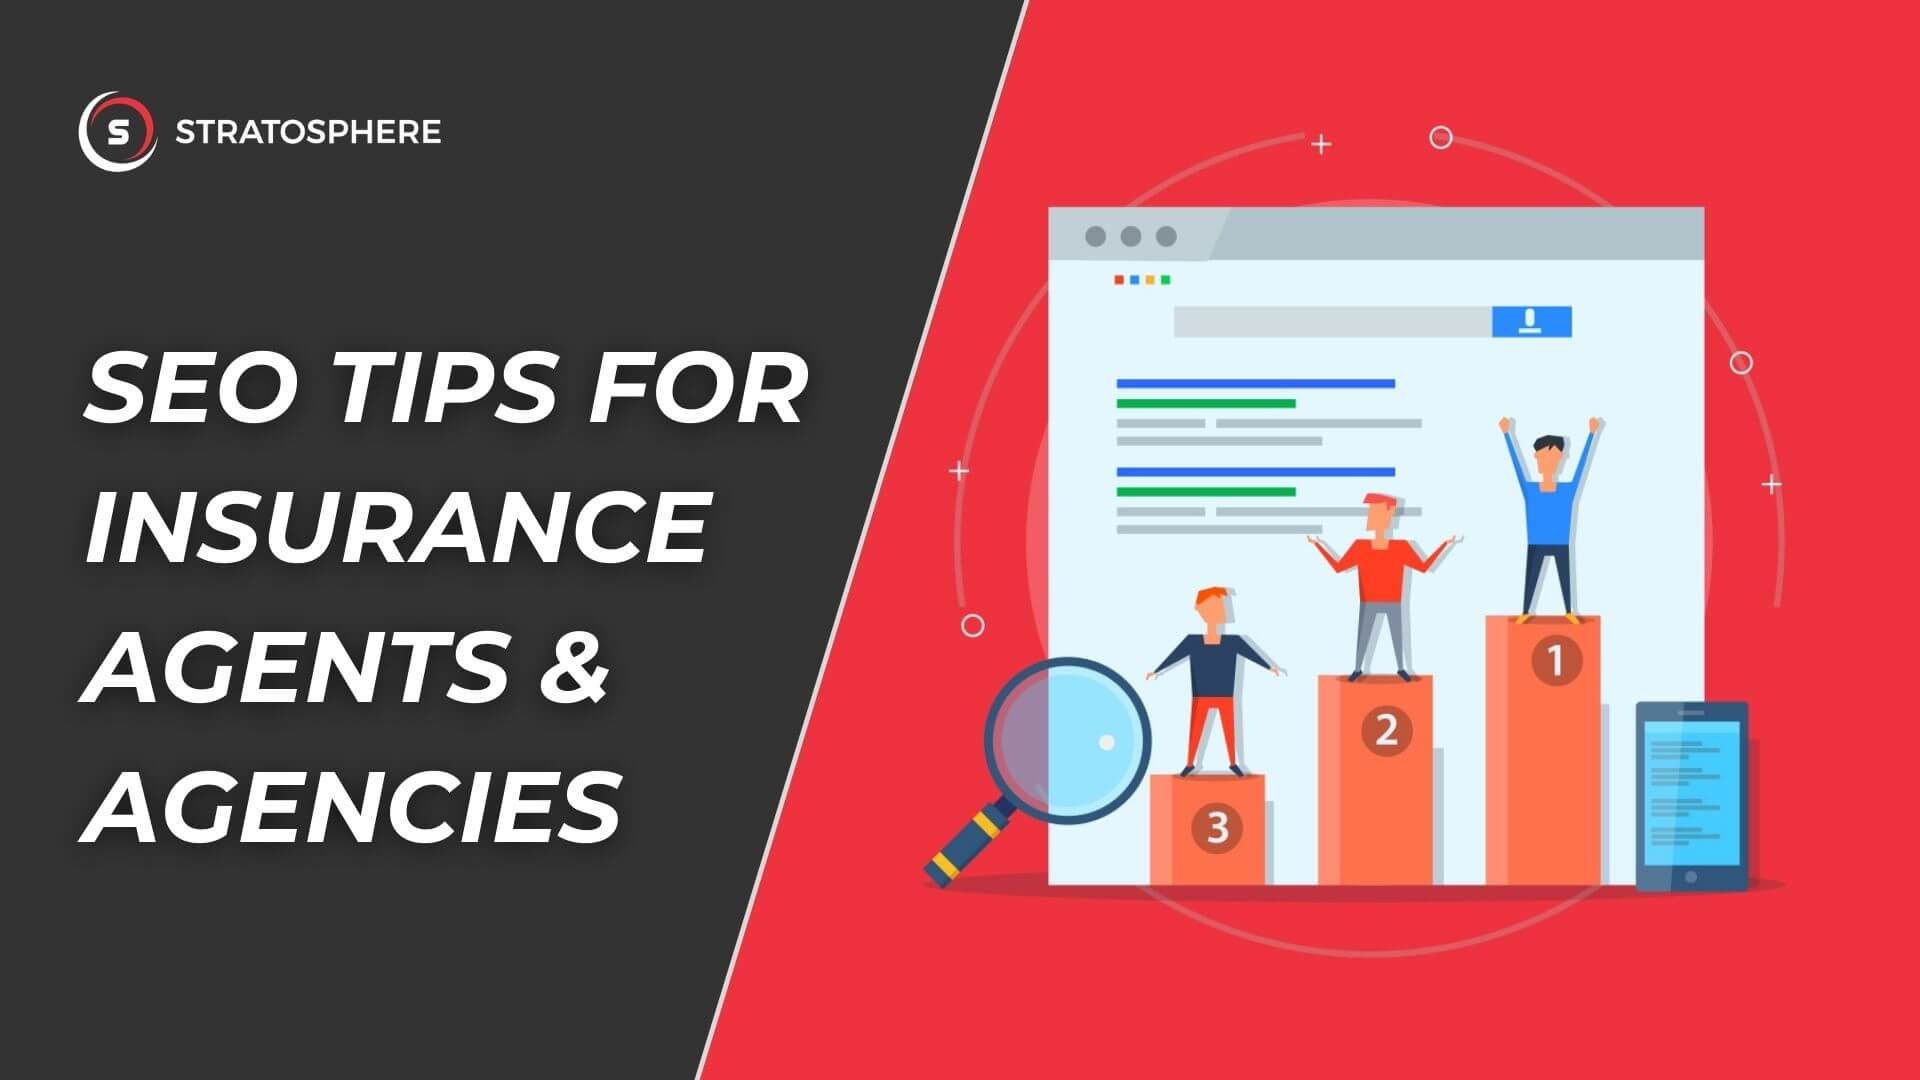 23 SEO Tips for Insurance Agents to Improve Website Traffic and Conversions